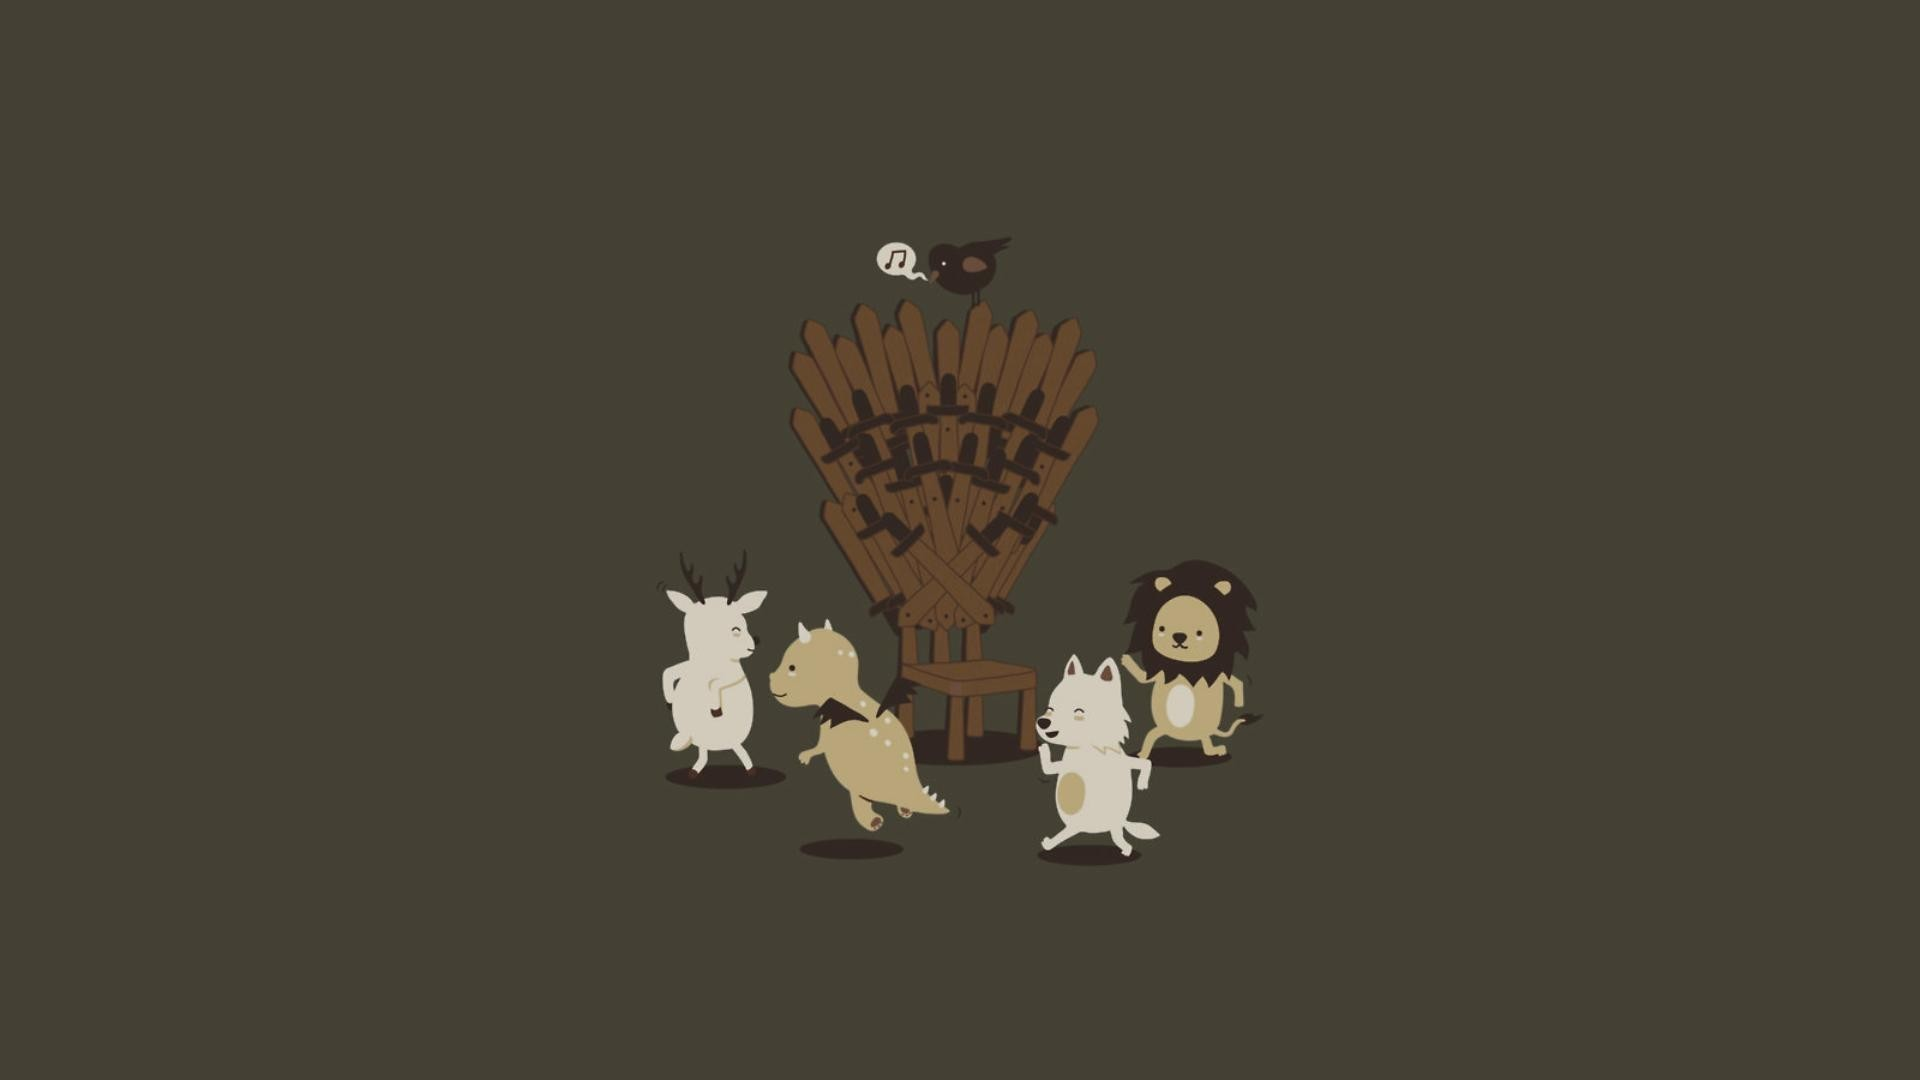 A Song Of Ice And Fire Dance Deer Dragons Funny Game Thrones House  Baratheon Lannister Stark Targaryen Lions Minimalistic Throne Wolves …